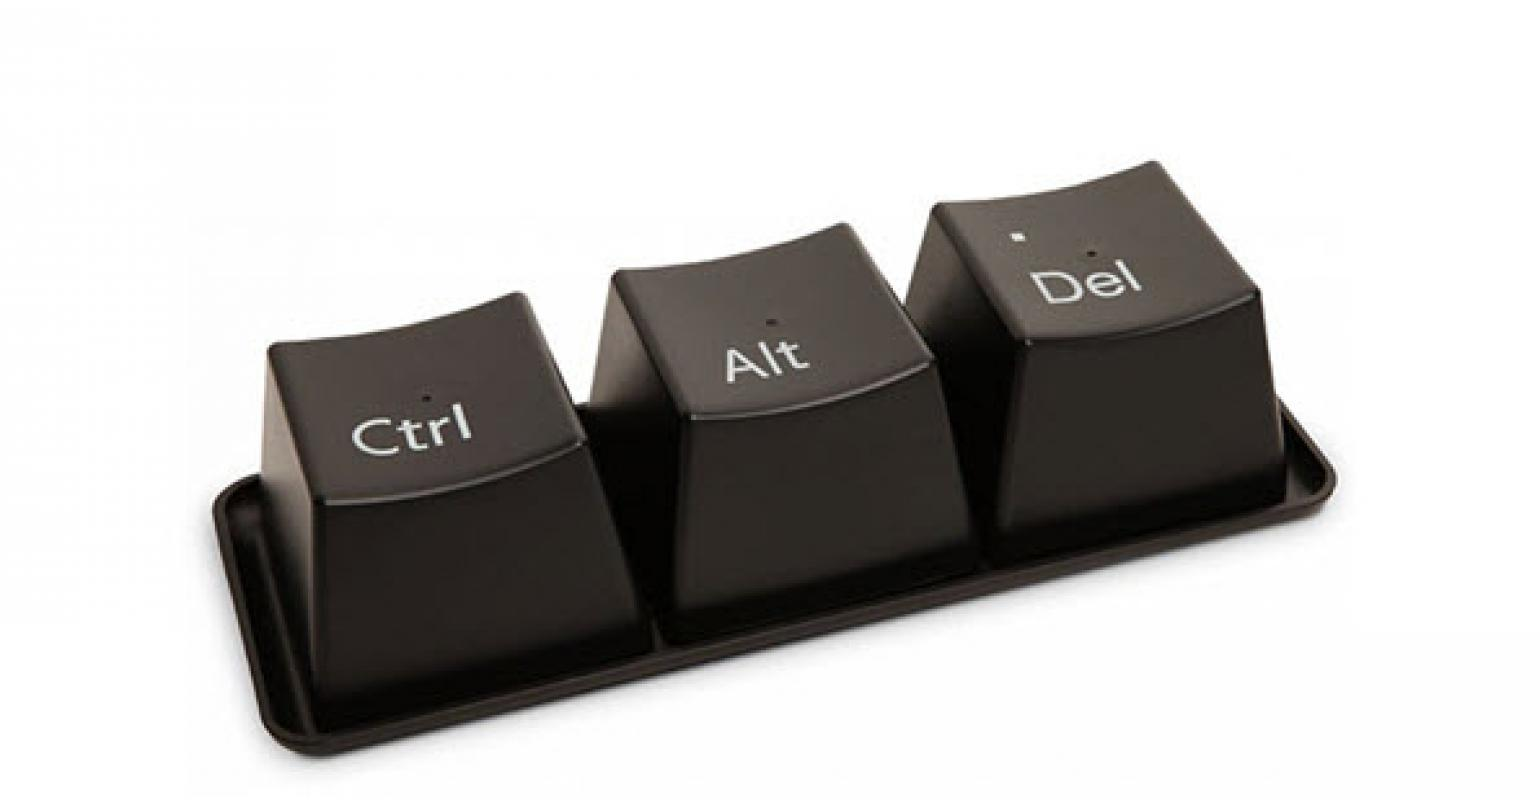 send Ctrl Alt Delete to remote desktop